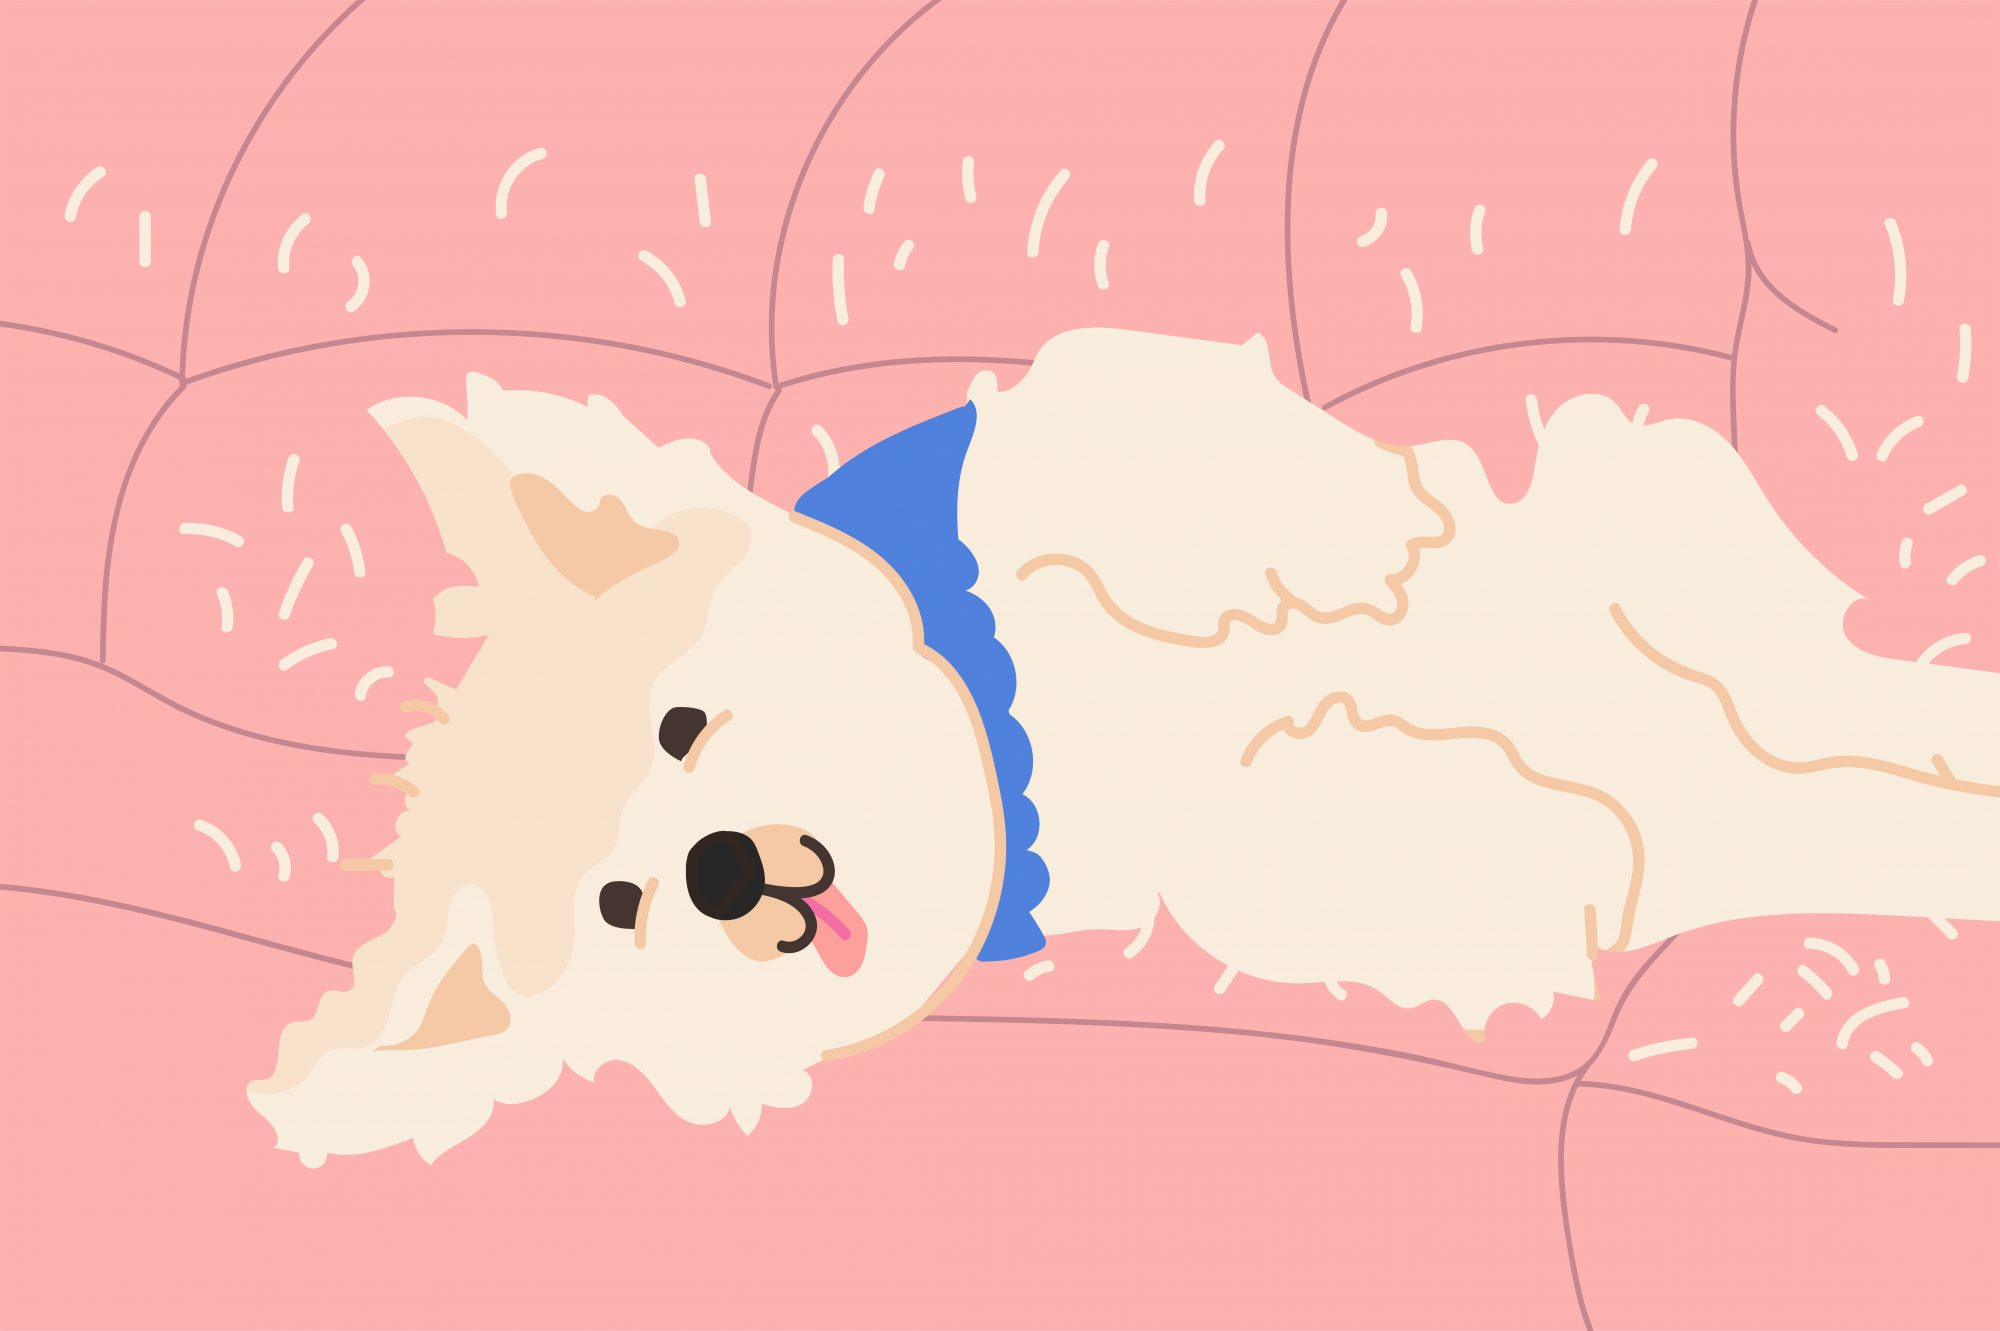 illustration of dog shedding on couch